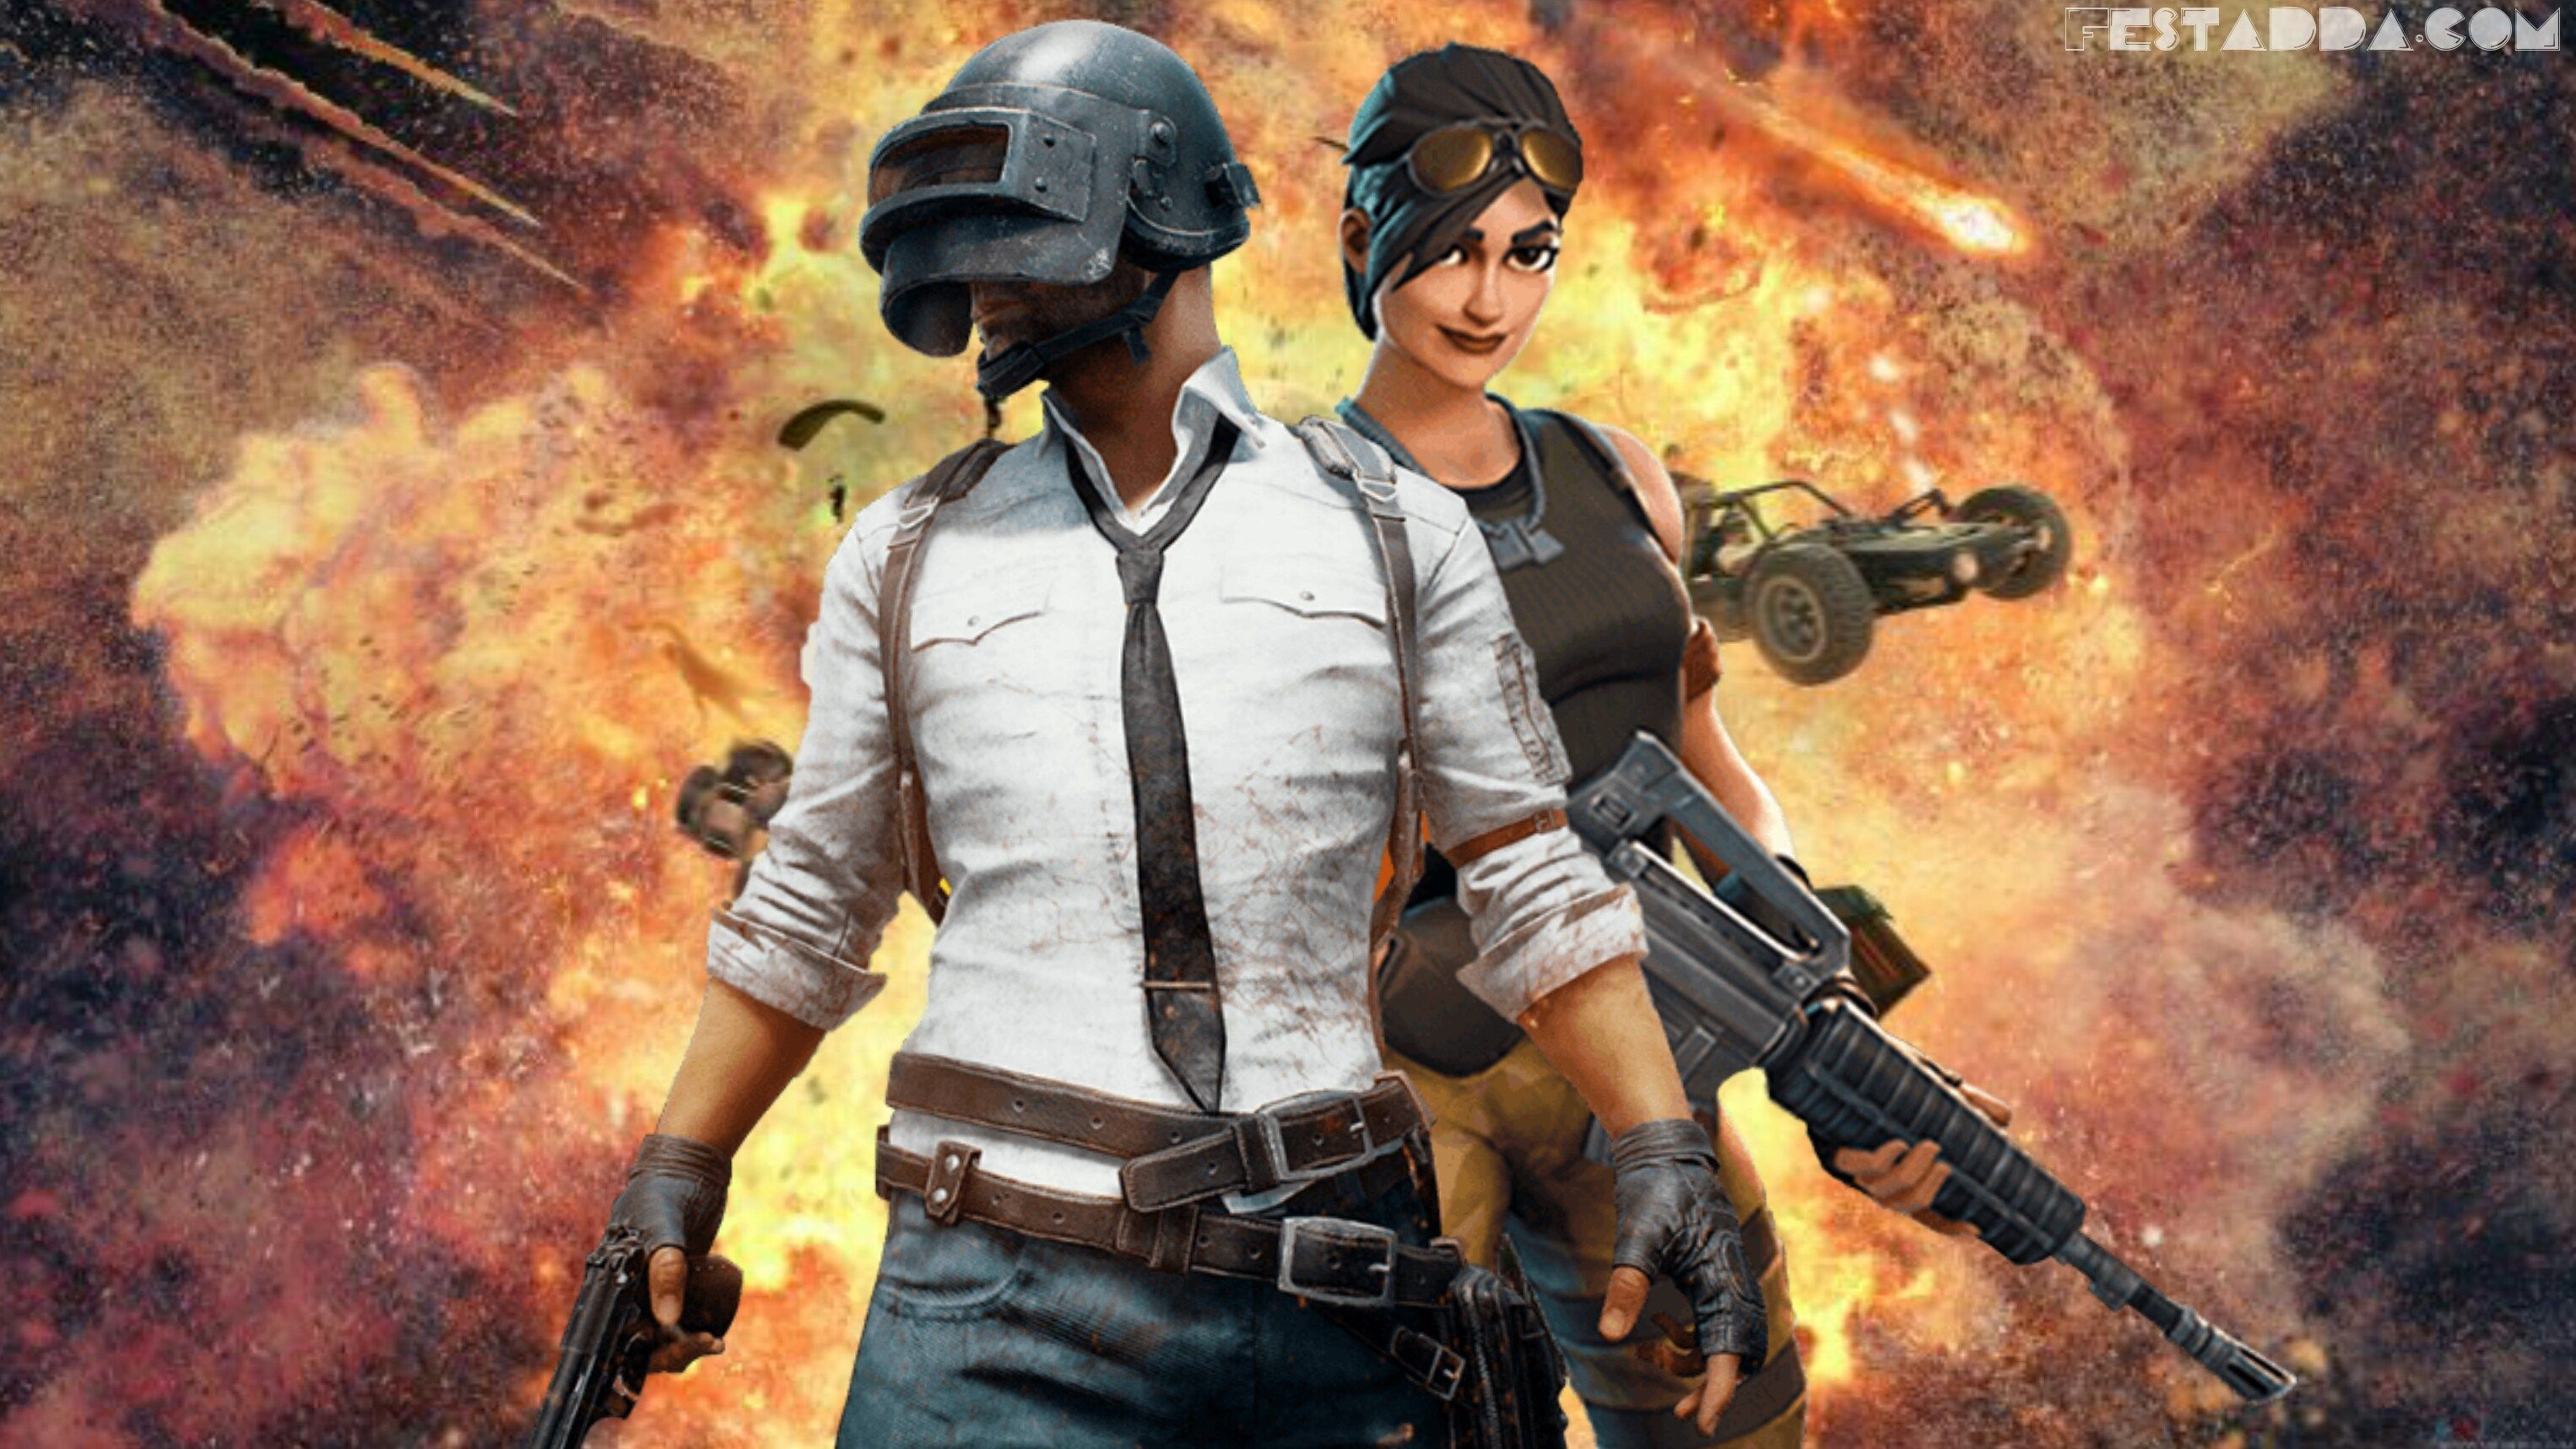 Pubg Hd Wallpaper Iphone: PUBG Wallpaper 1080P